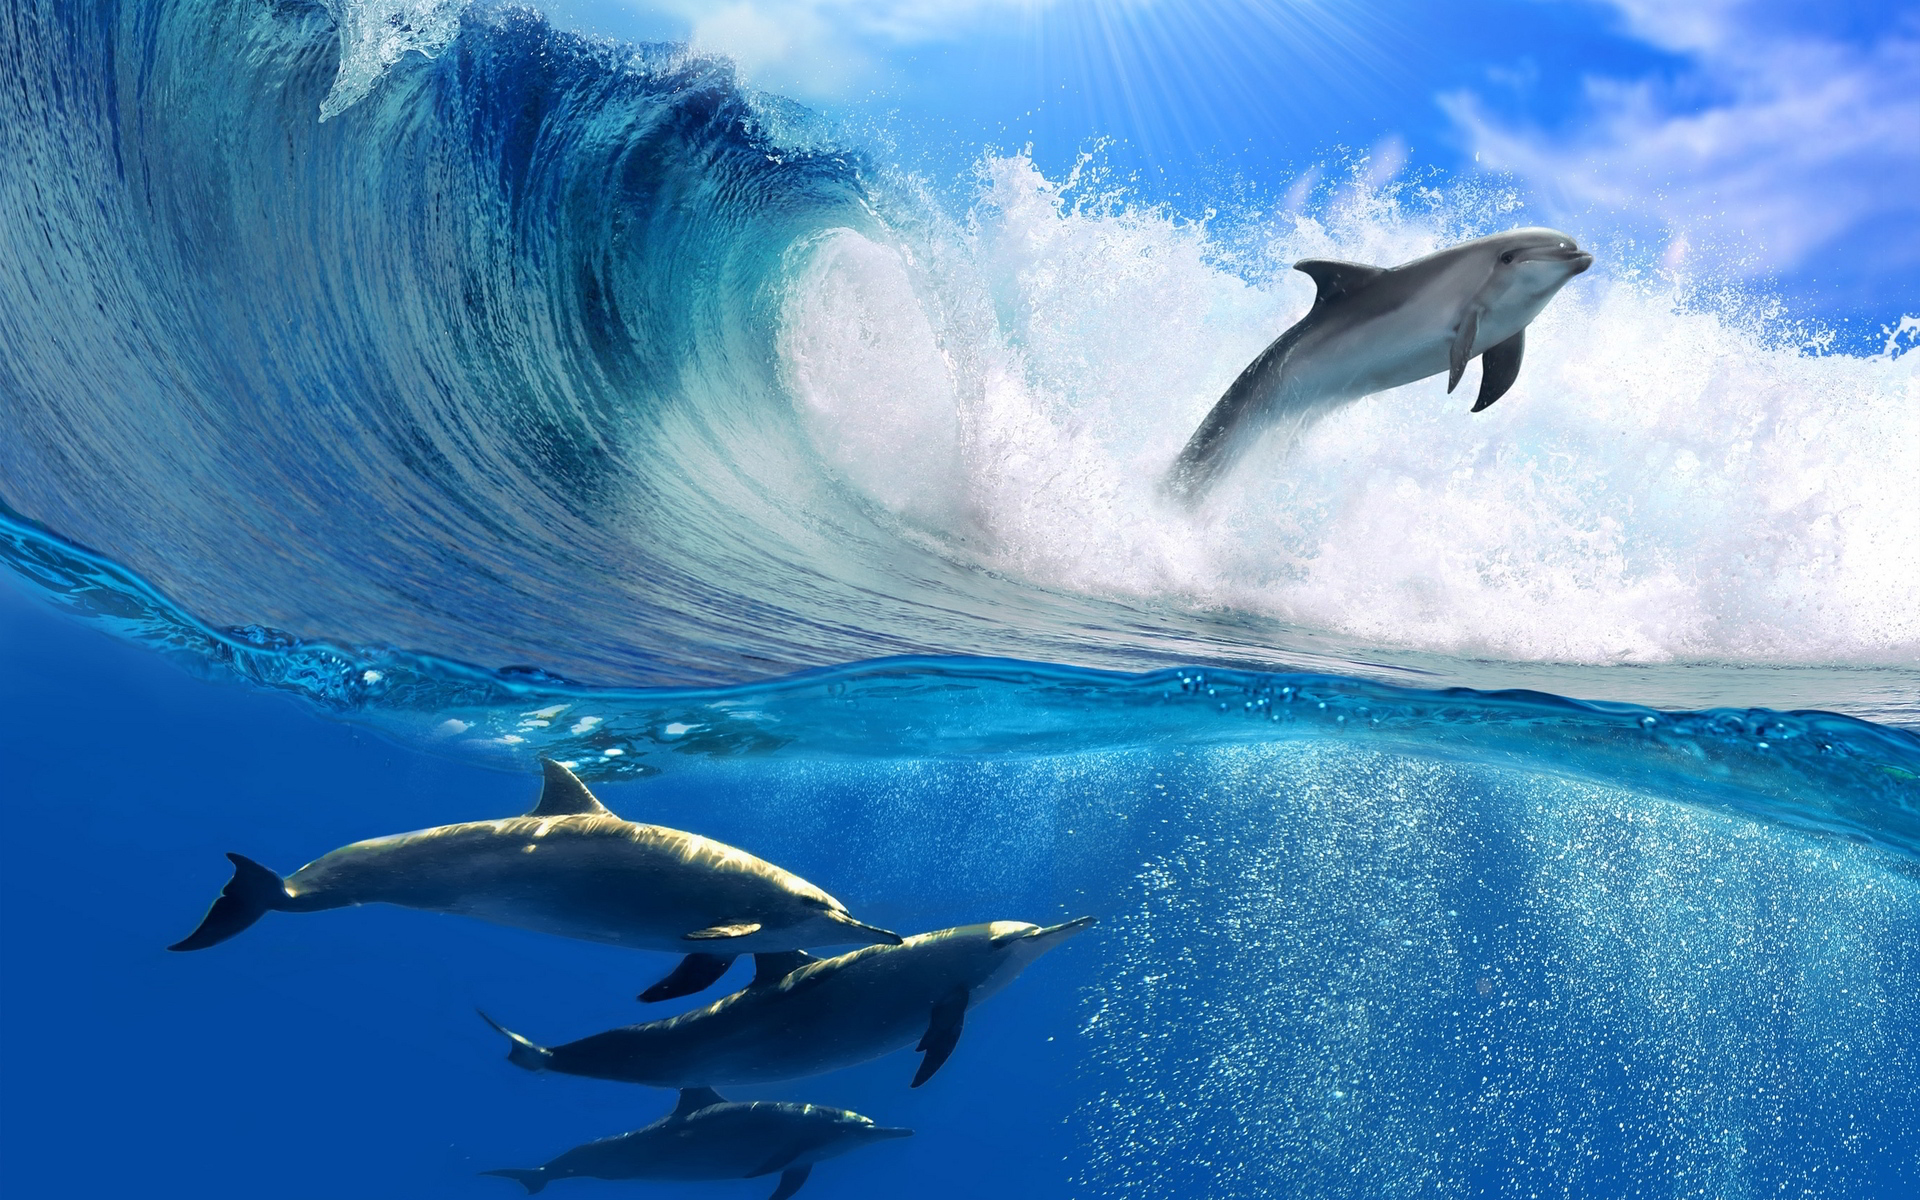 Dolphins wallpapers high definition wallpapers cool nature - Wave Desktop Wallpaper Wallpaper High Definition High Quality